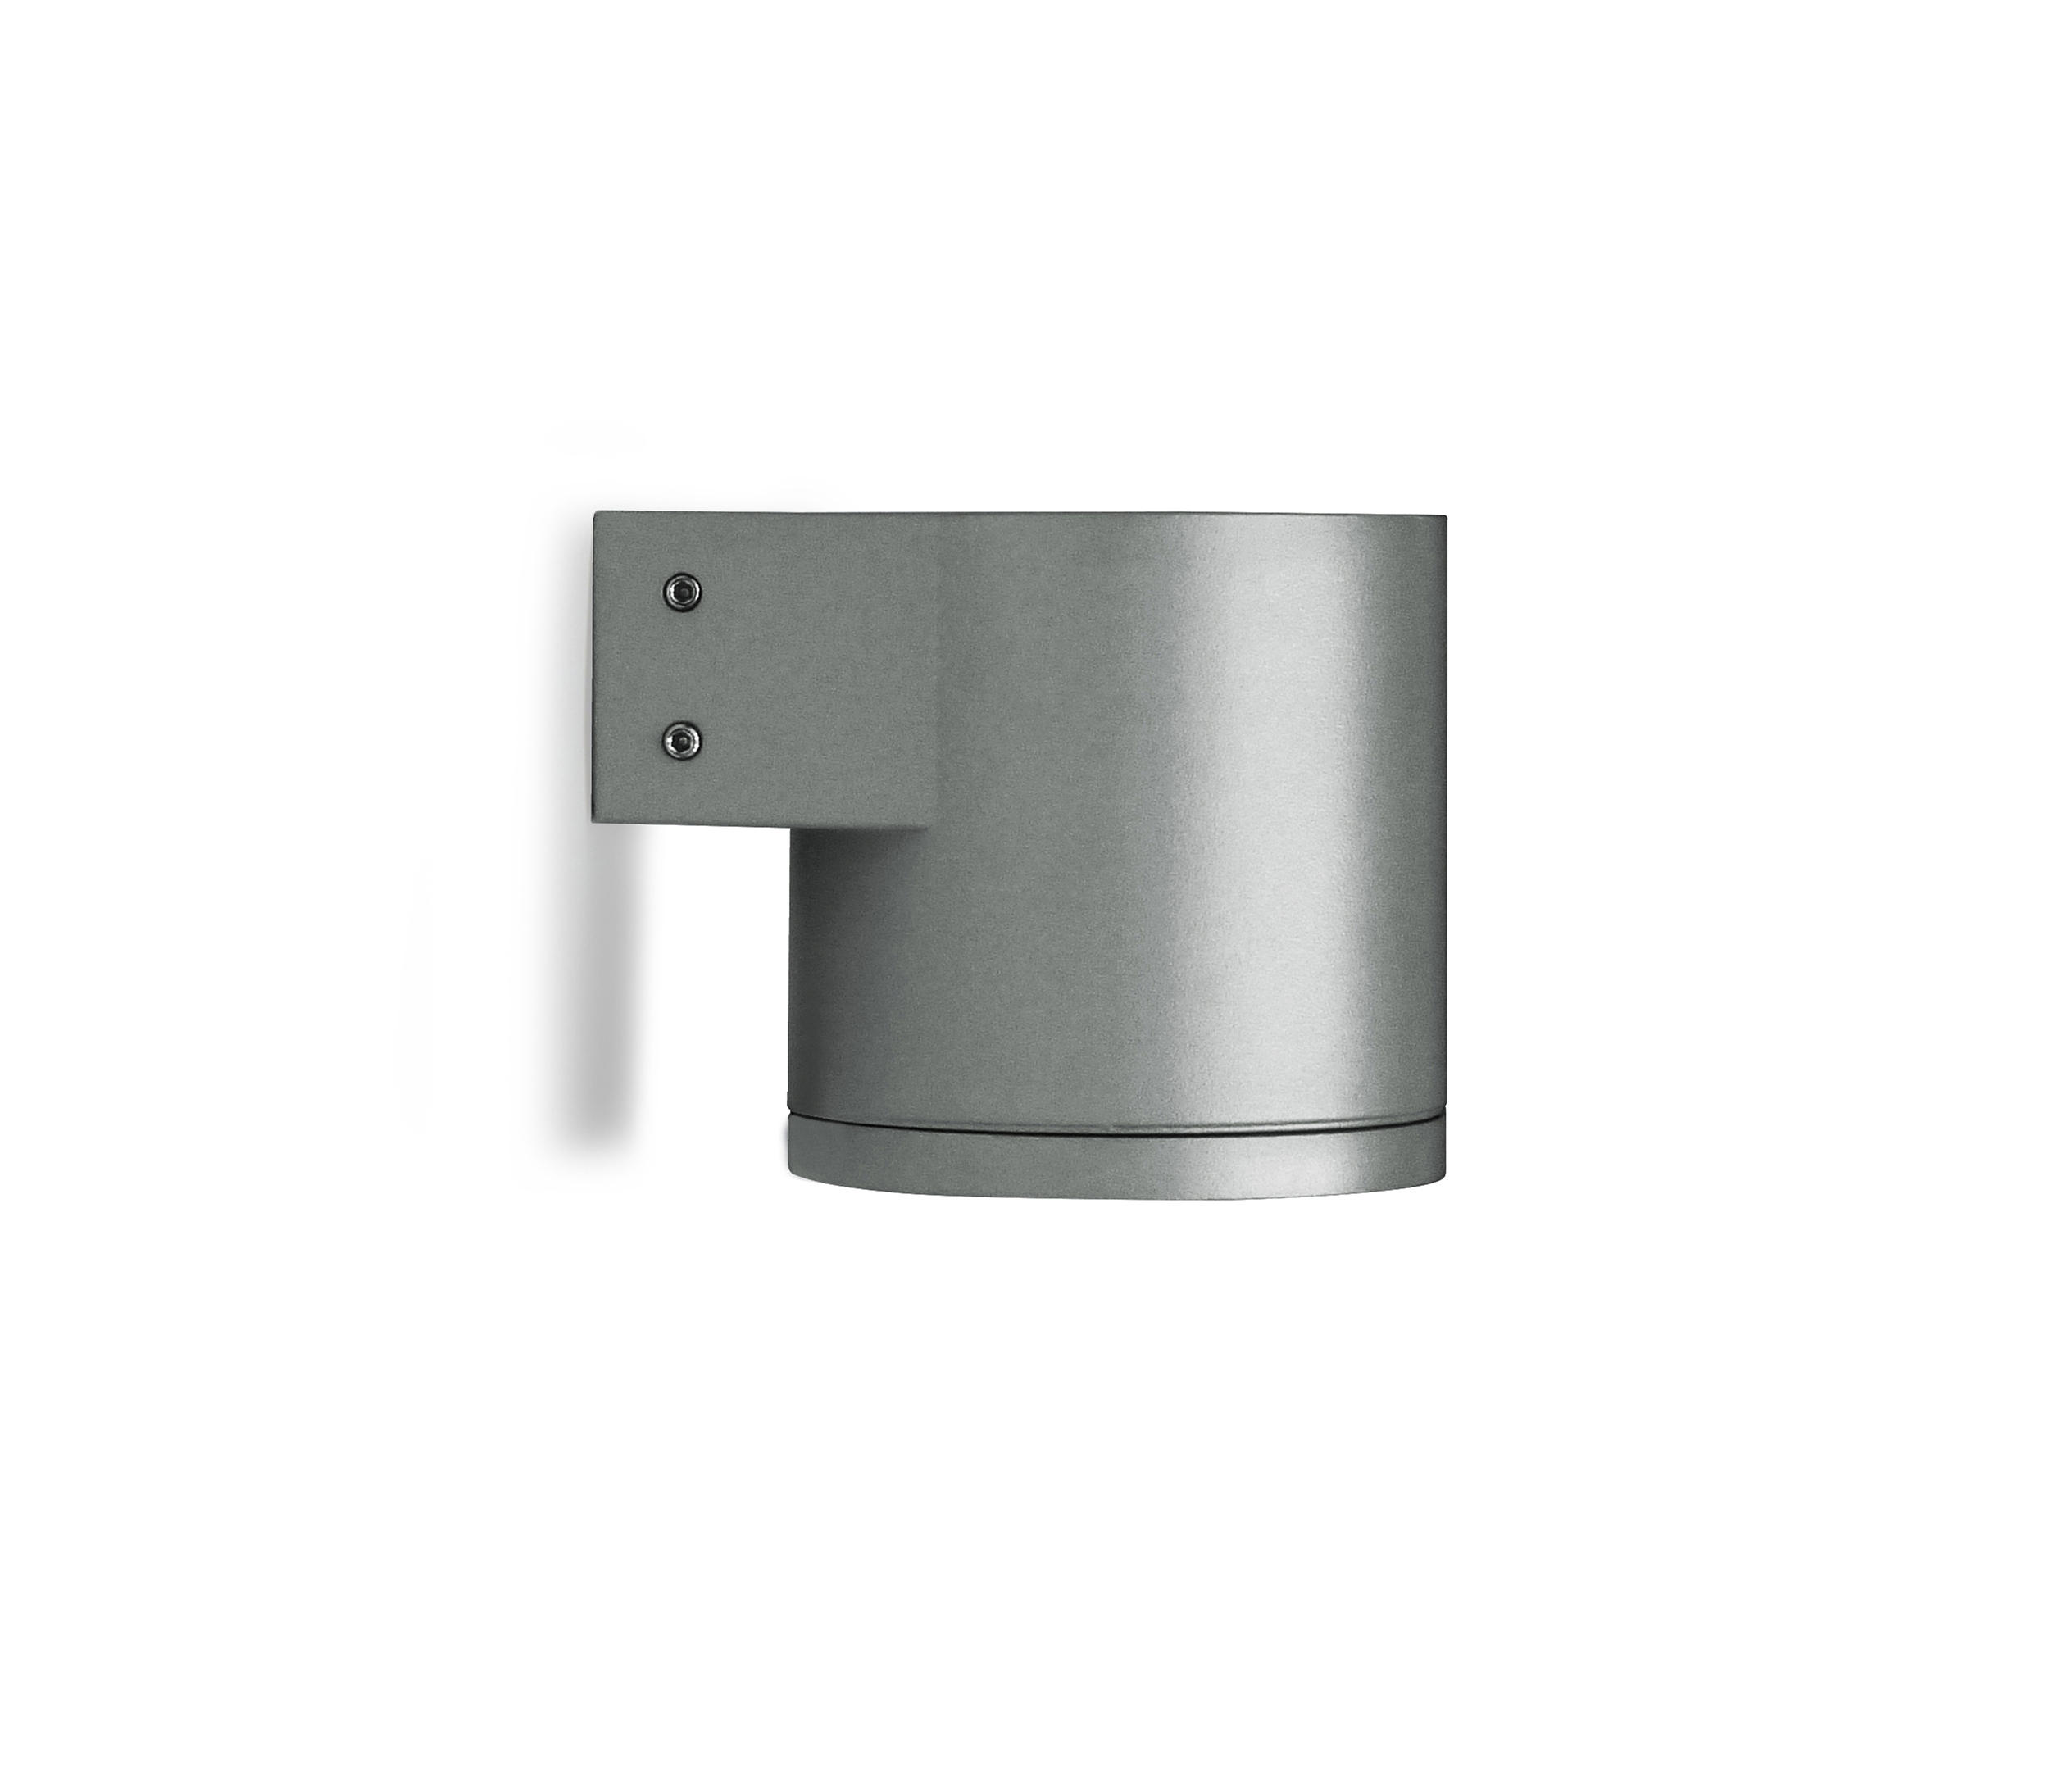 MINILOFT ROUND WALL MOUNTED - Wall-mounted spotlights from Simes Architonic